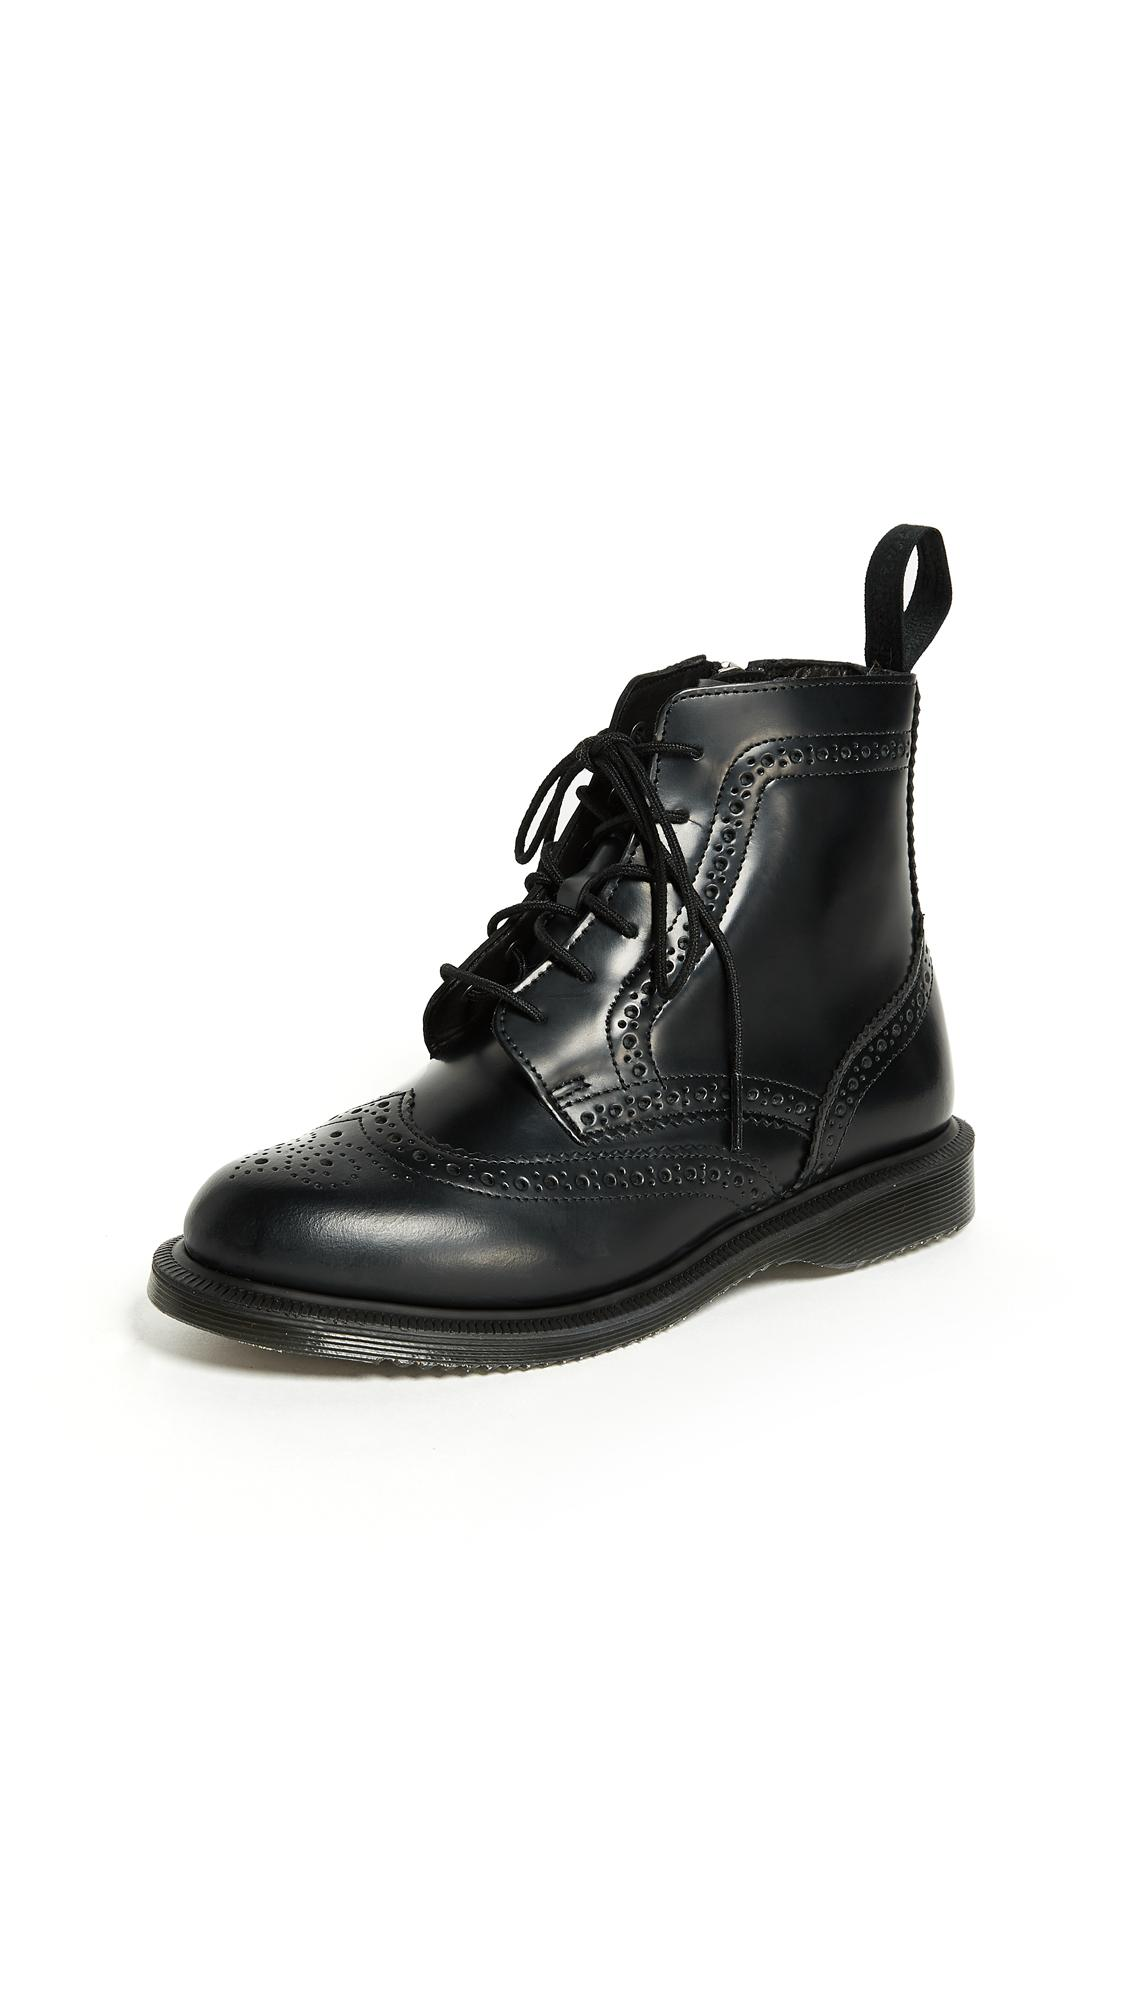 de3c79b9584 Dr. Martens Delphine Brogue Black Leather Lace Up Flat Ankle Boots - Black